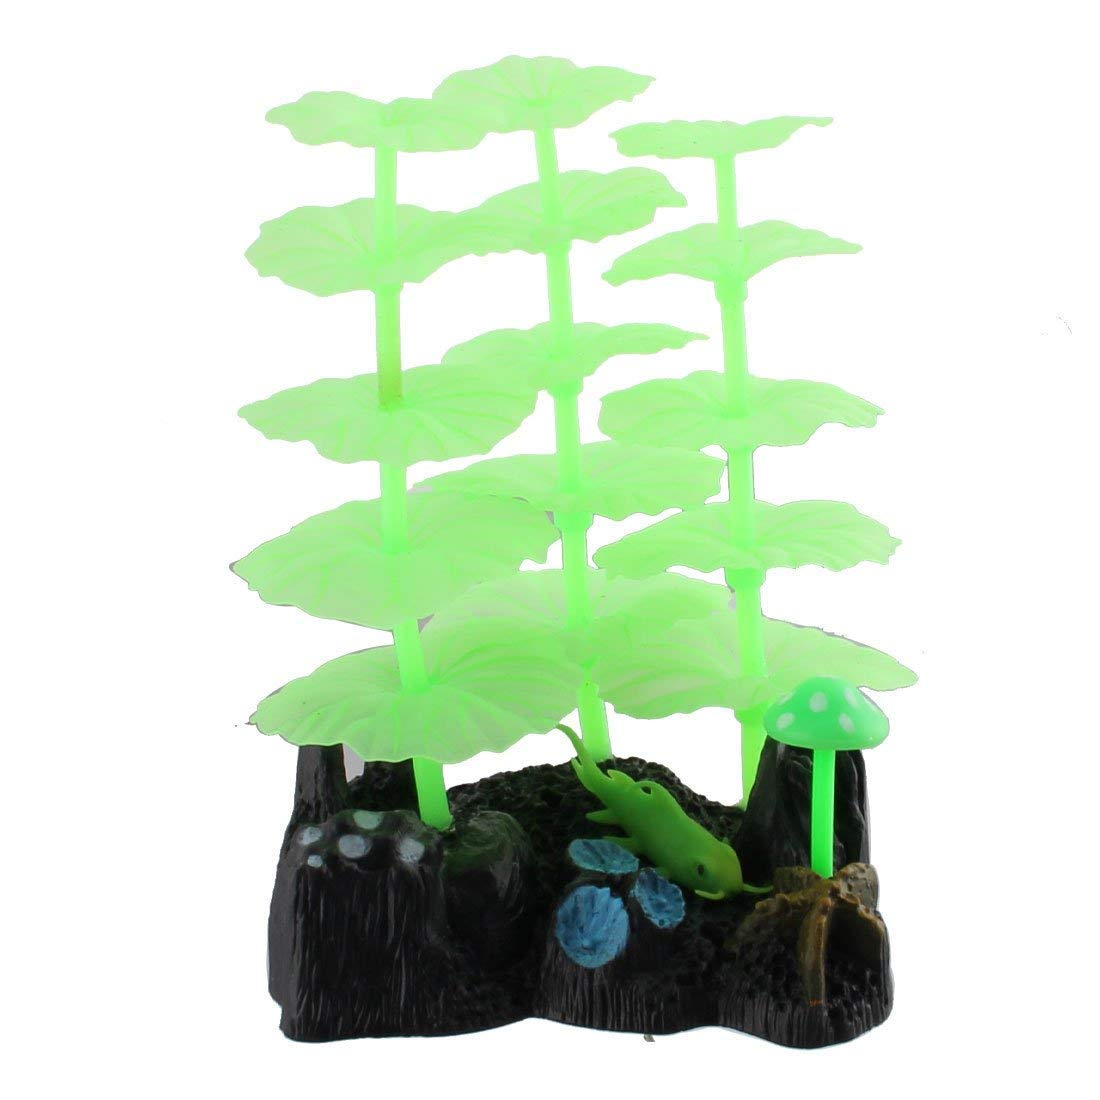 1Pc Ceramic Base Aquarium Scenery Vivid Aquatic Viewing Sea Decorative Coral Plant